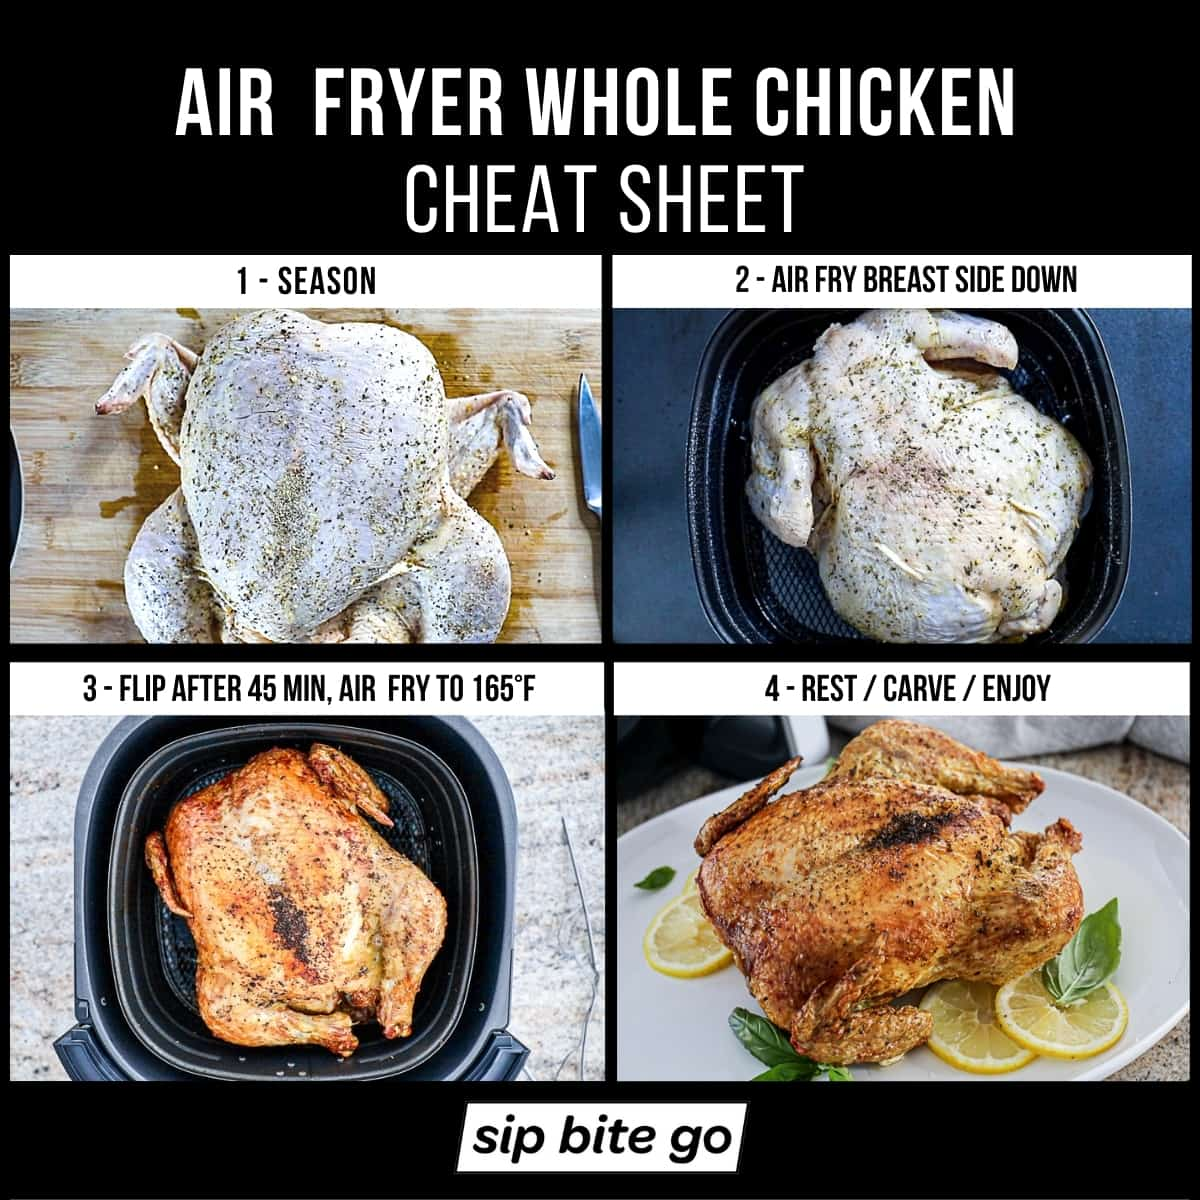 Recipe instructions demonstrating how to AIR FRY A WHOLE CHICKEN